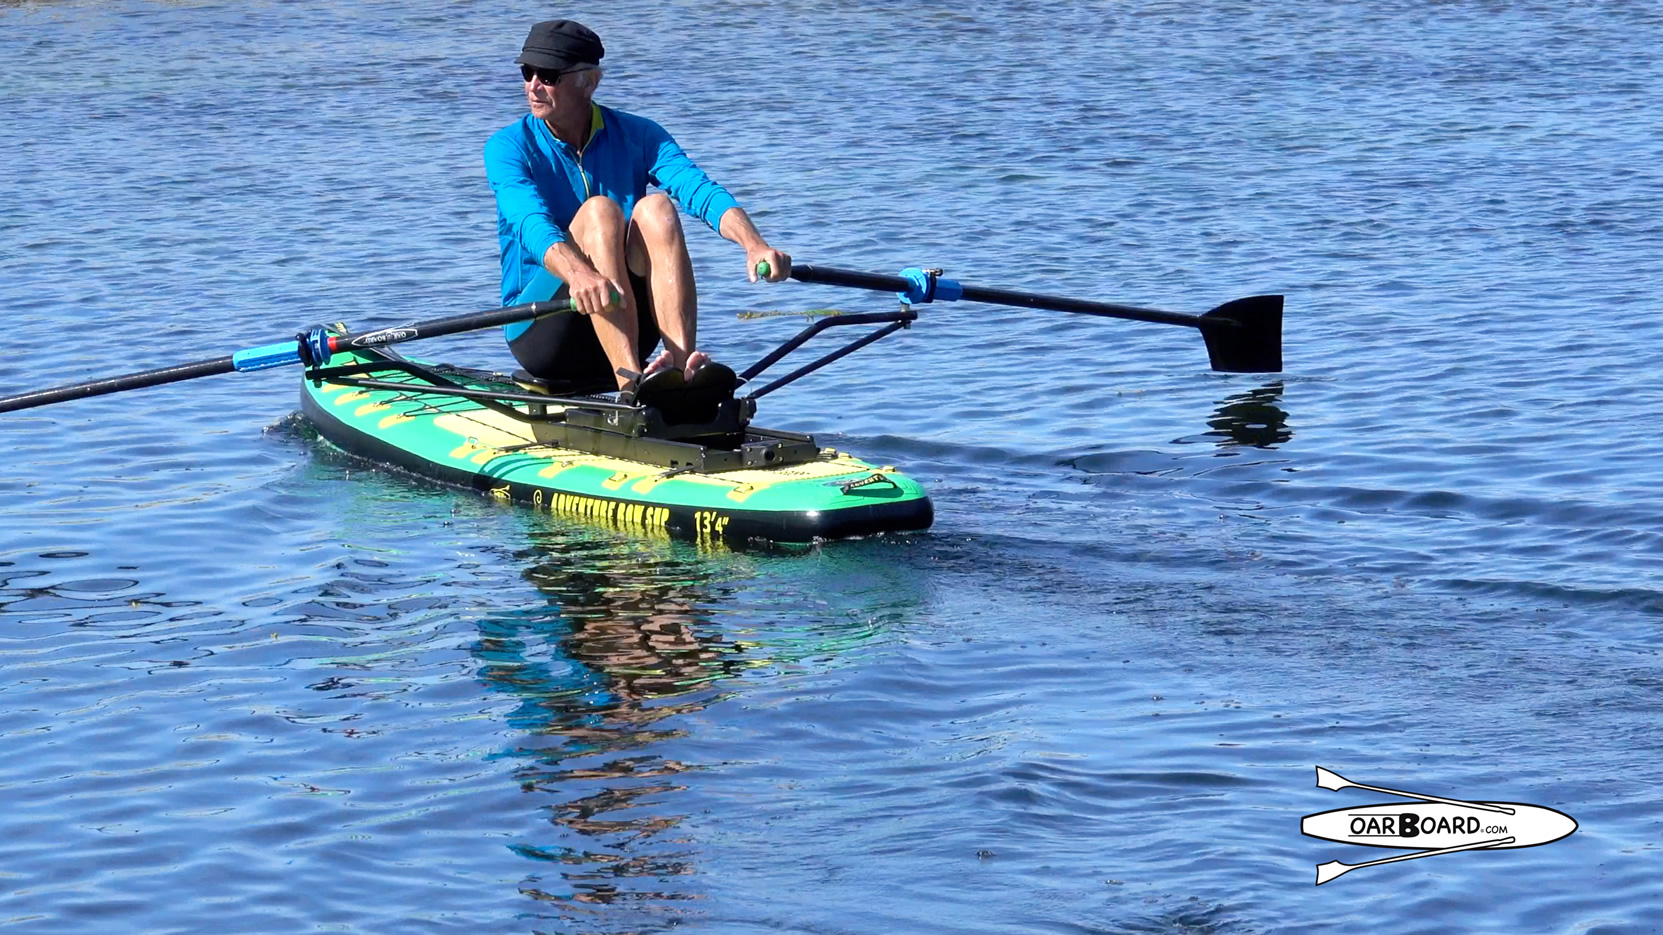 Silva-Bay-Harold-Aune-6-Oar-Board-Stand-Up-Paddle-Board-Rower-Whitehall-Rowing-and-Sail